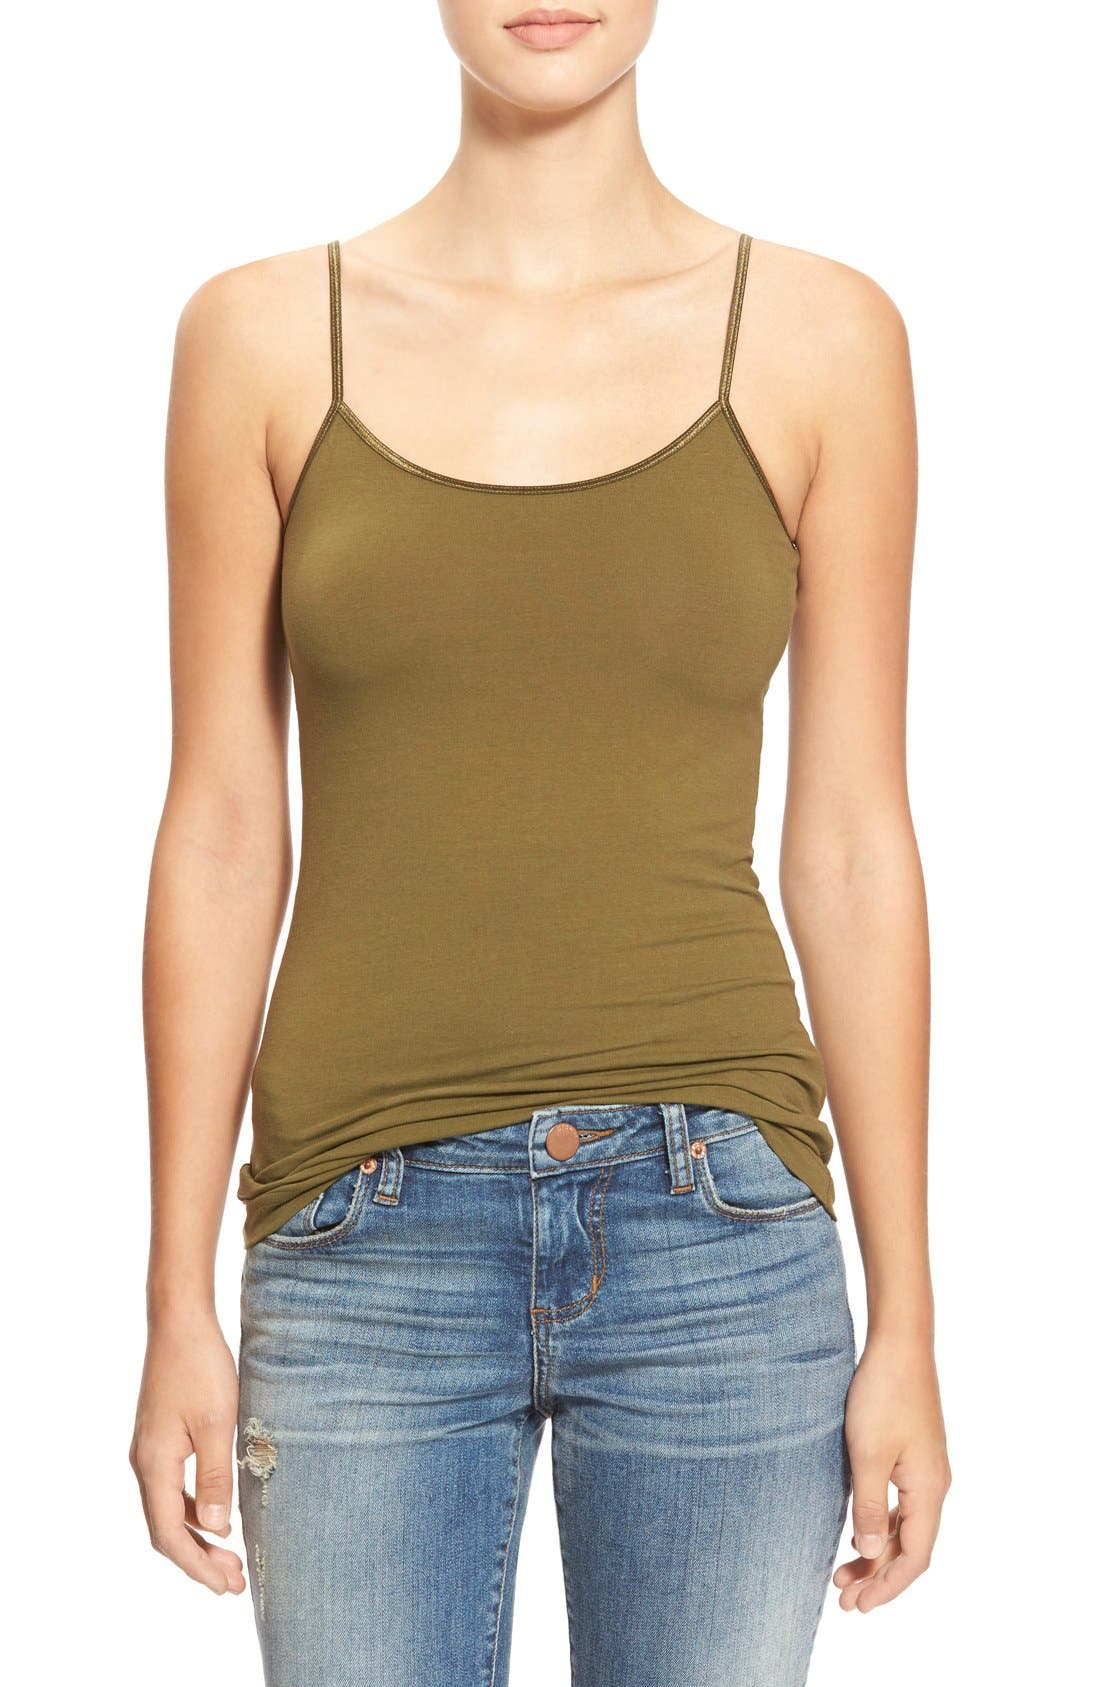 Alternate Image 1 Selected - BP. Stretch Camisole